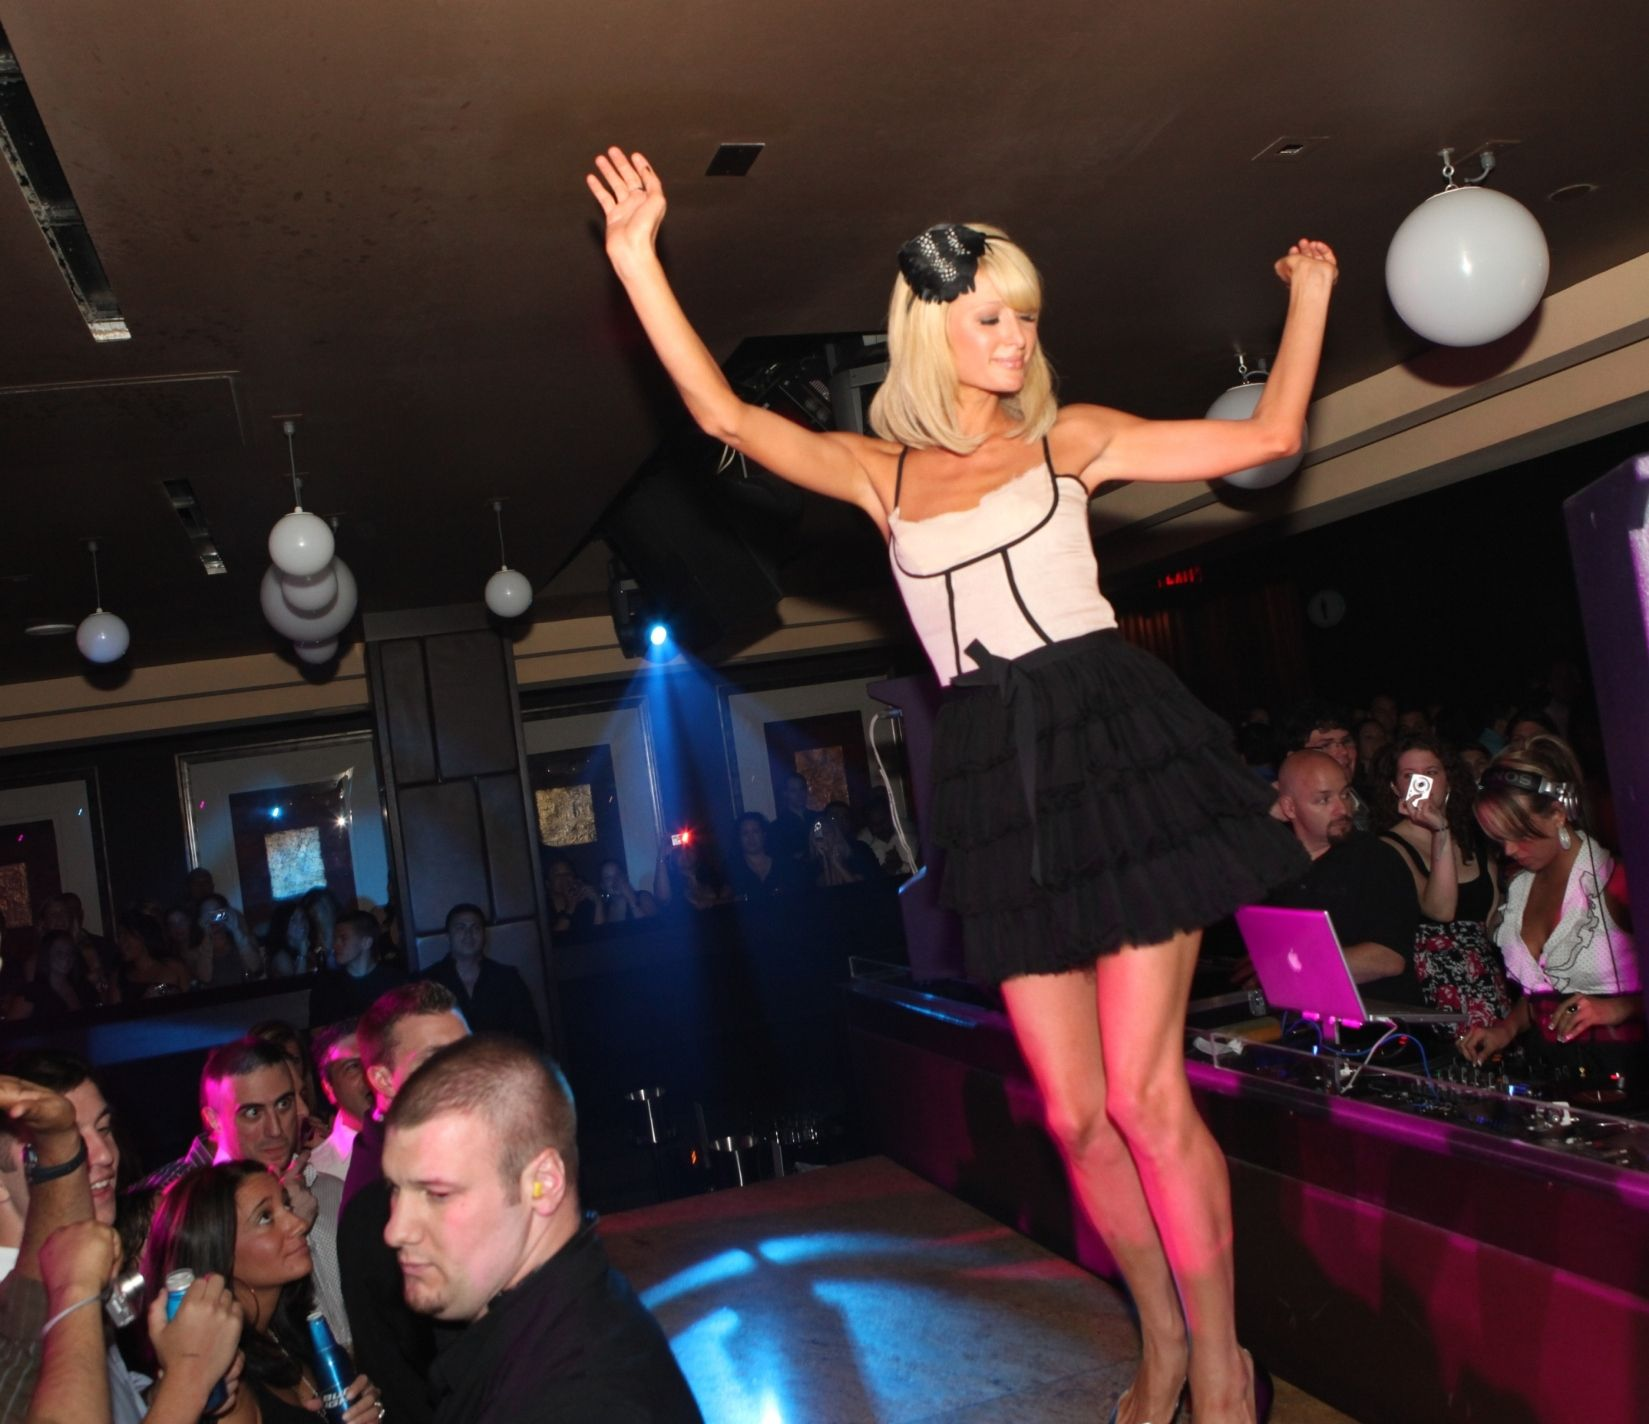 Paris Hilton dancing the night away at mur.mur #borgata ...